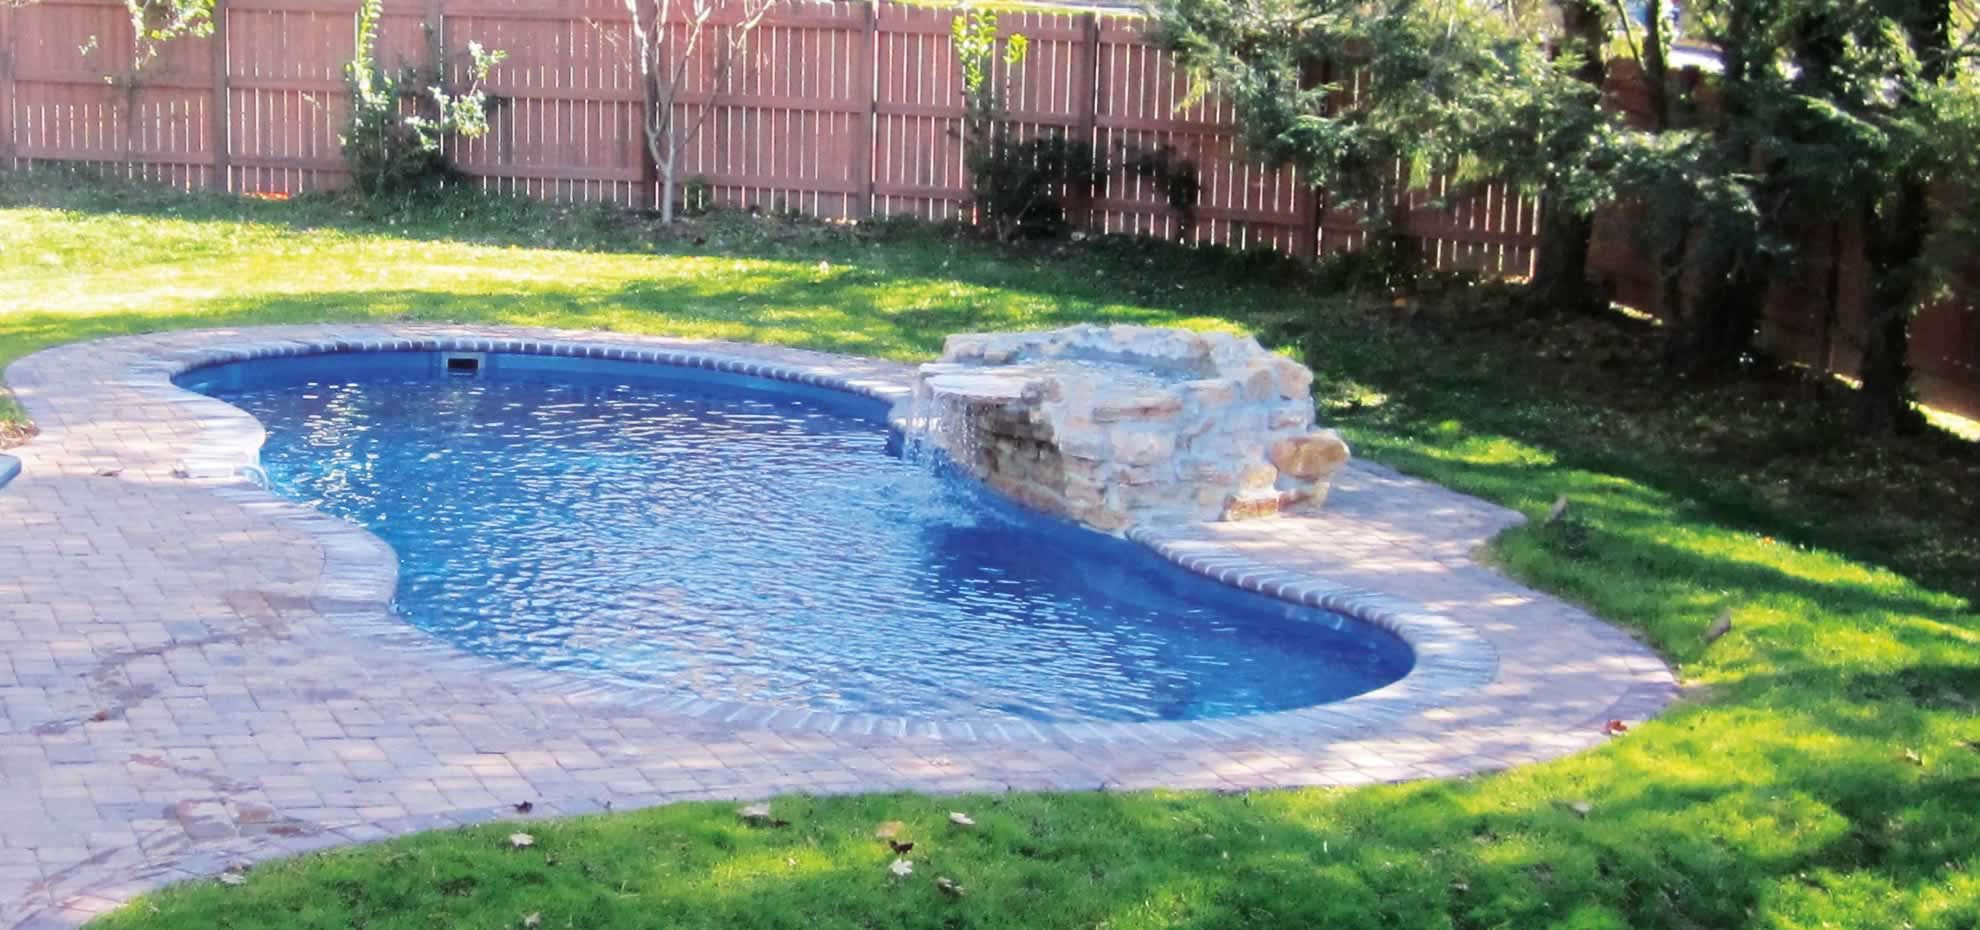 Mediterranean fibreglass pool with water feature by Leisure Pools